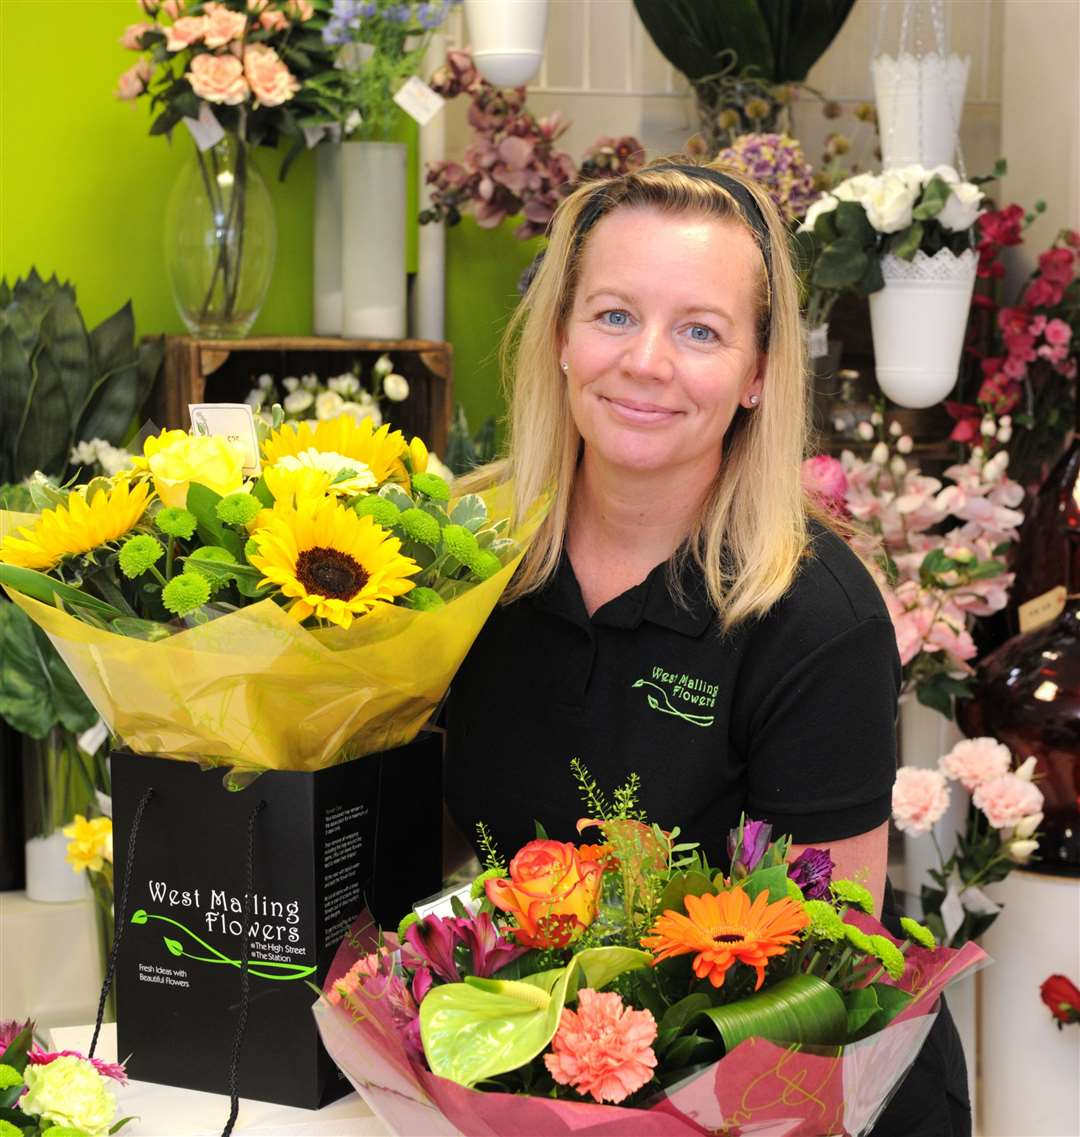 Nikki Meader of West Malling Flowers